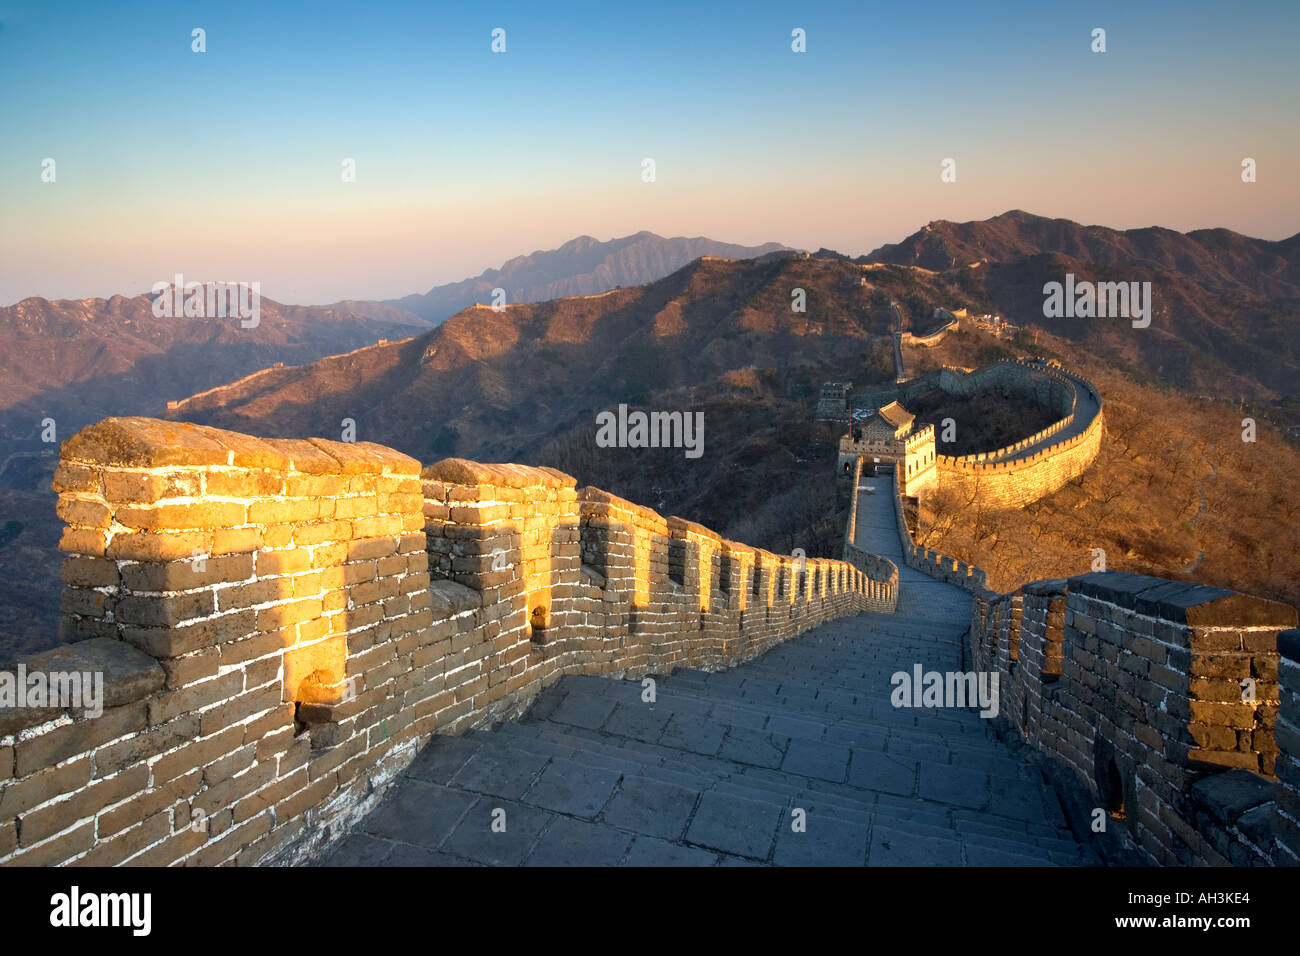 The Great wall of China near Beijing - Stock Image